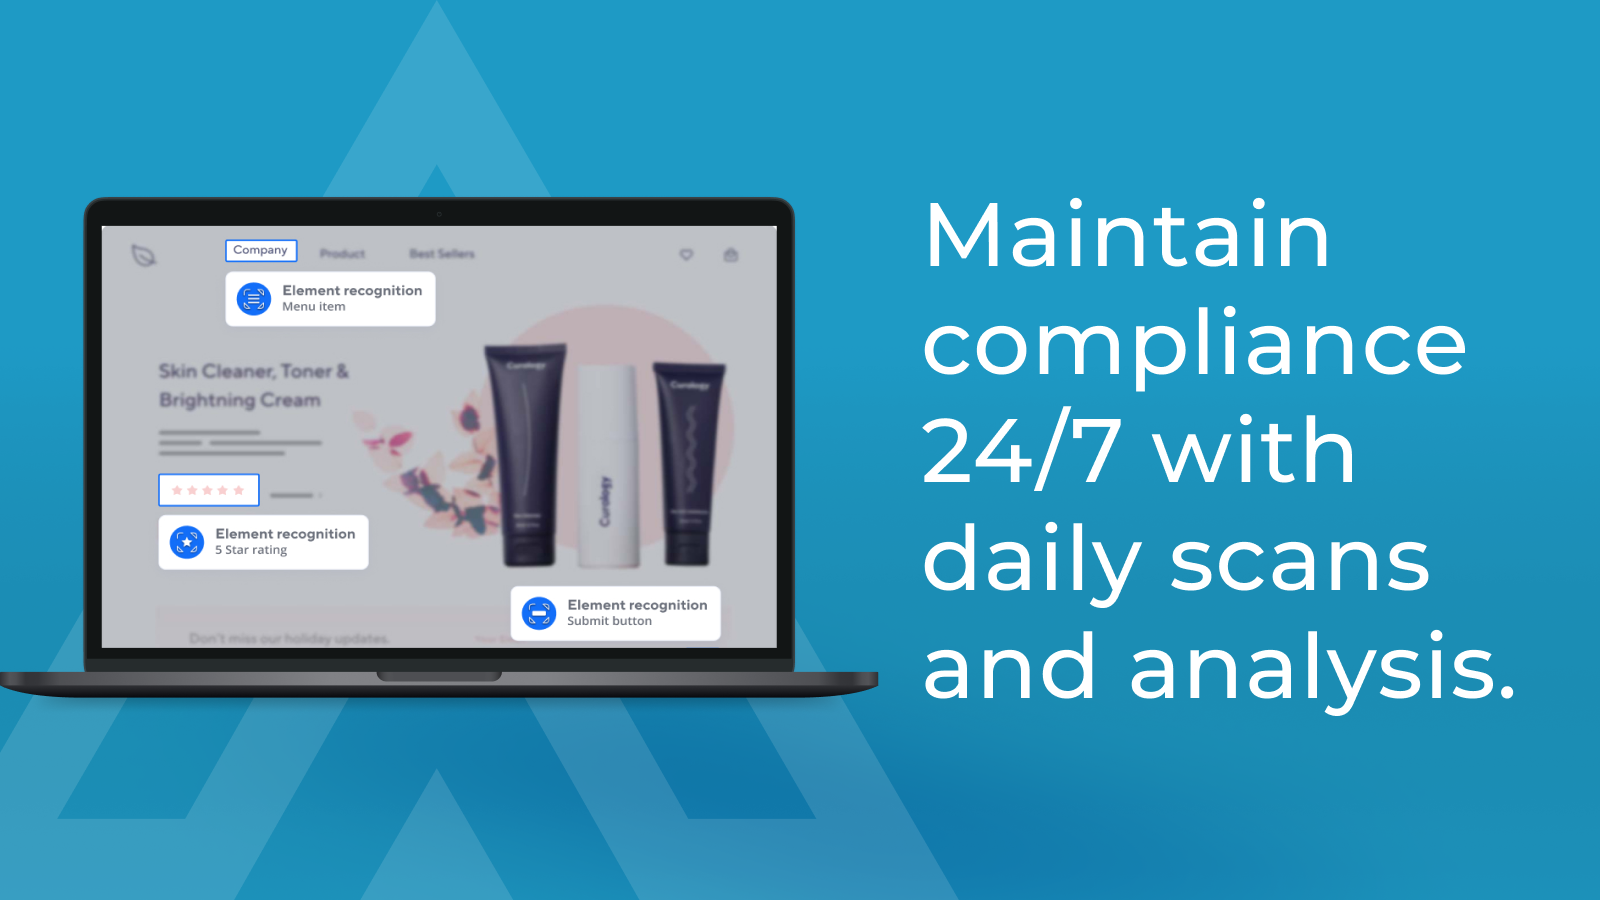 Maintain compliance 24/7 with daily scans and analysis.